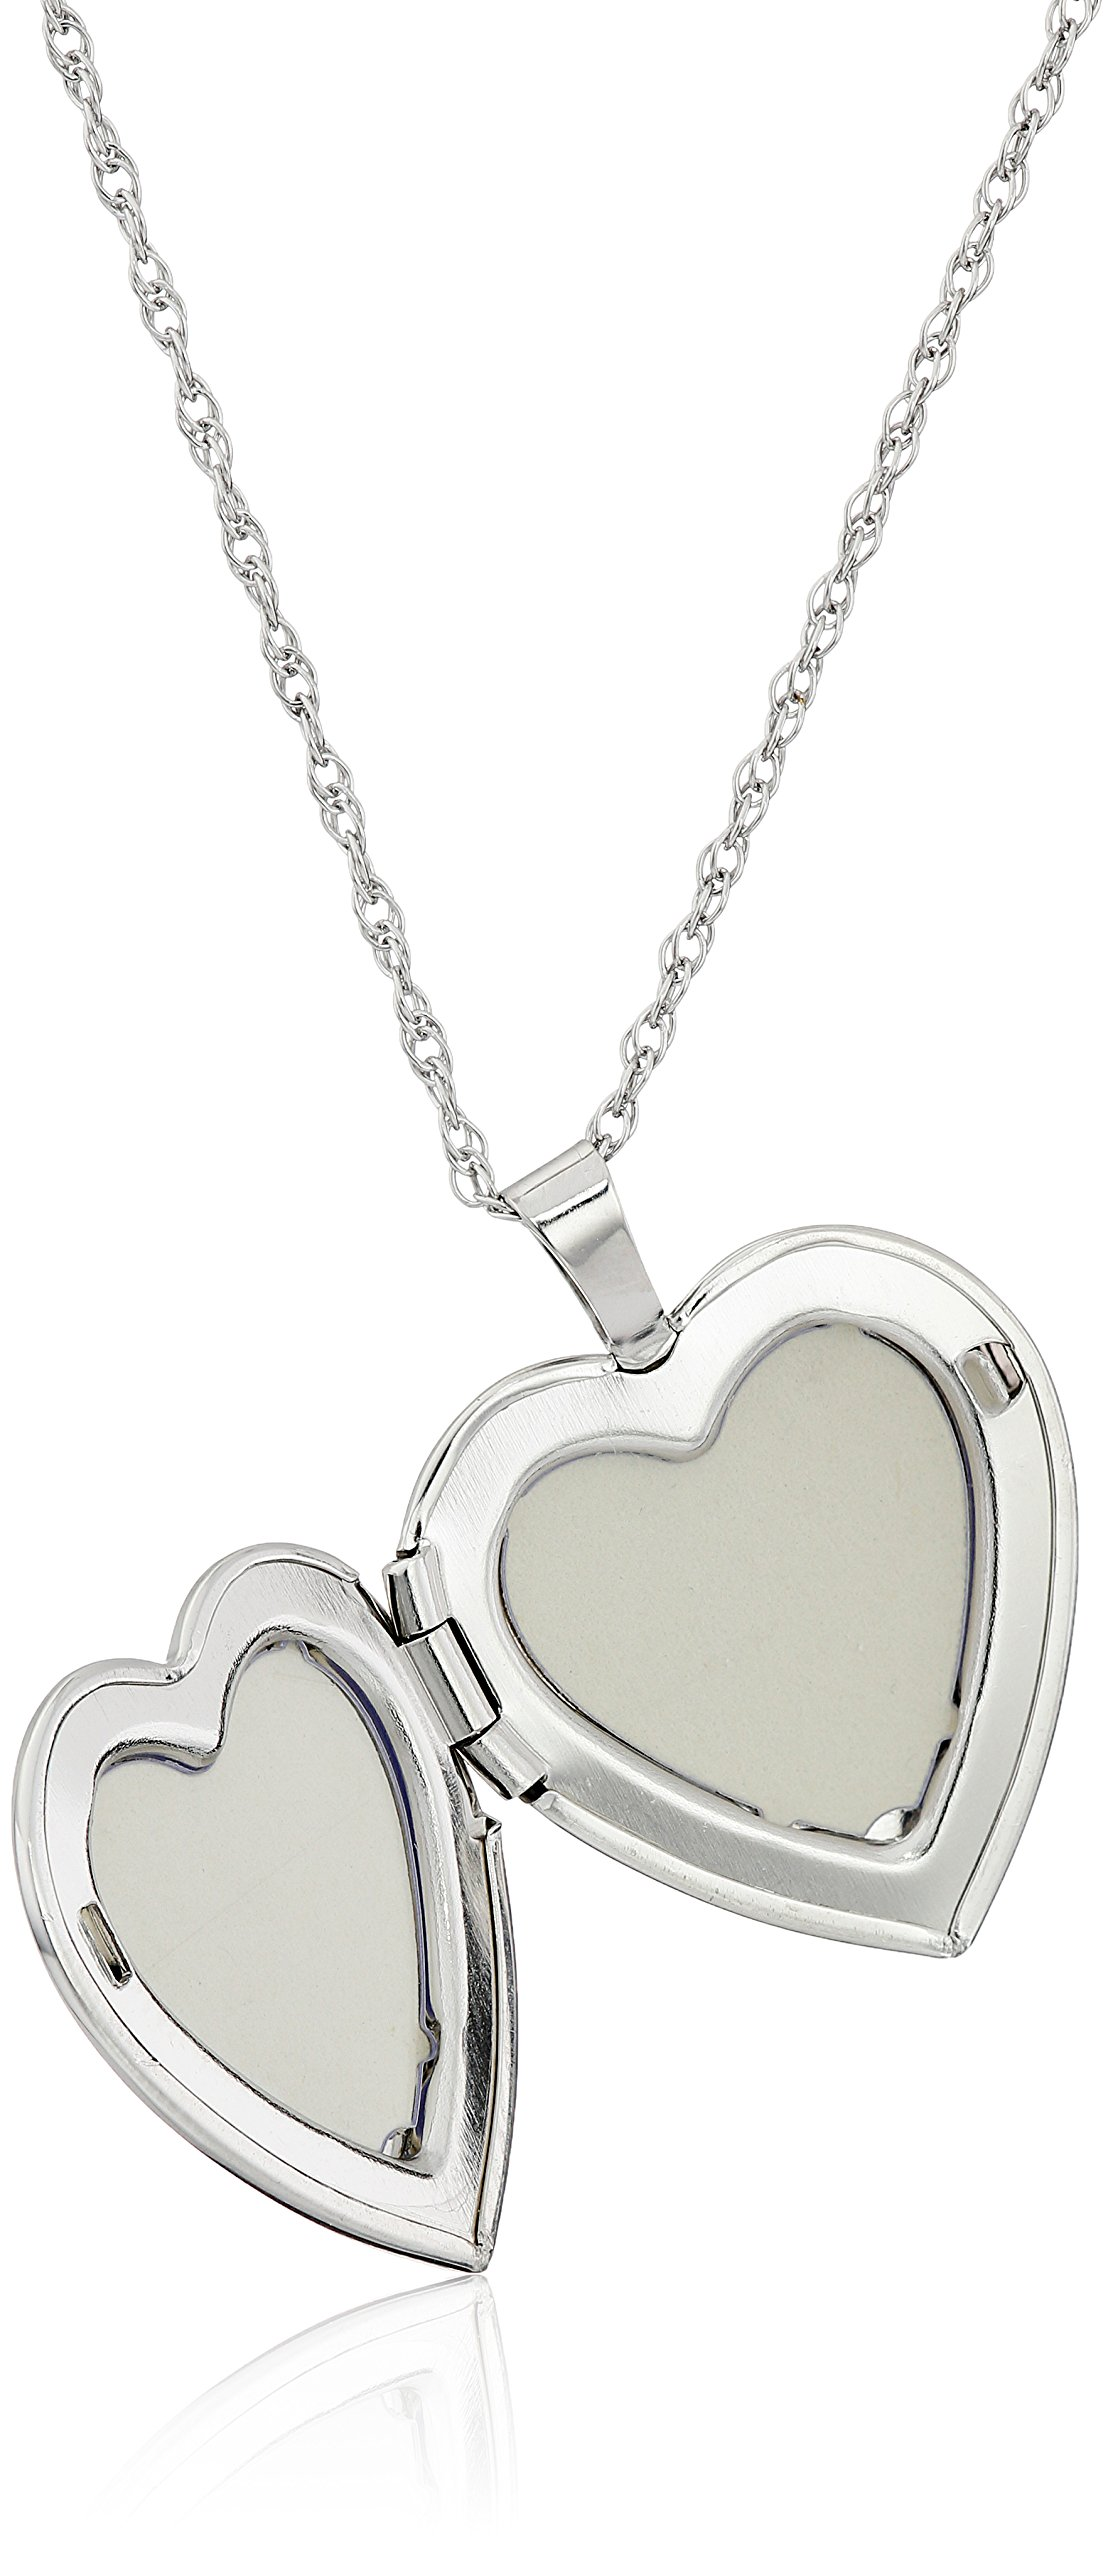 Sterling Silver Heart with Hand Engraved Butterfly Locket Necklace, 18'' by Amazon Collection (Image #2)